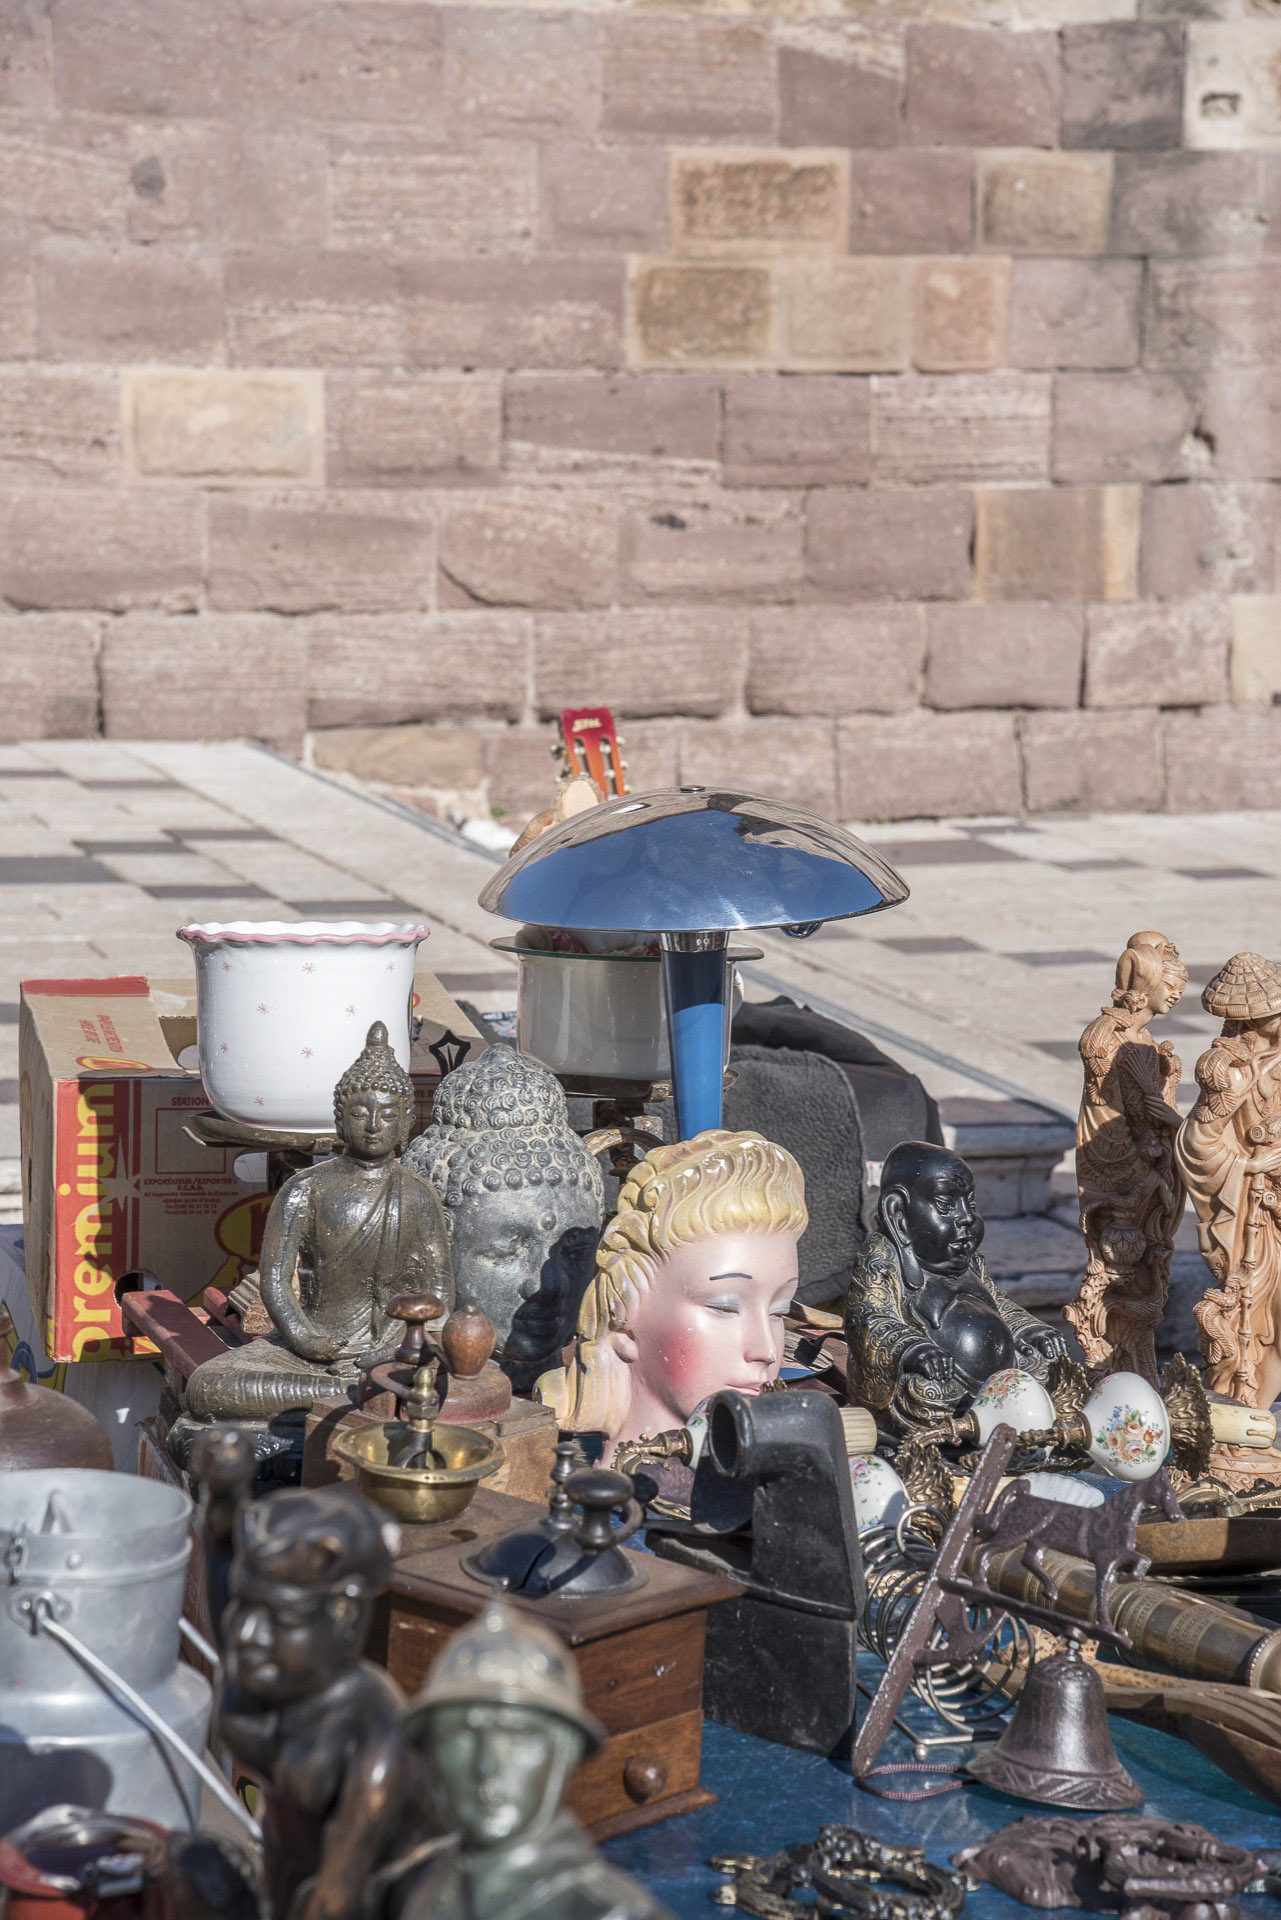 22-brocante-place-formige-hdr-1920-px.jpg